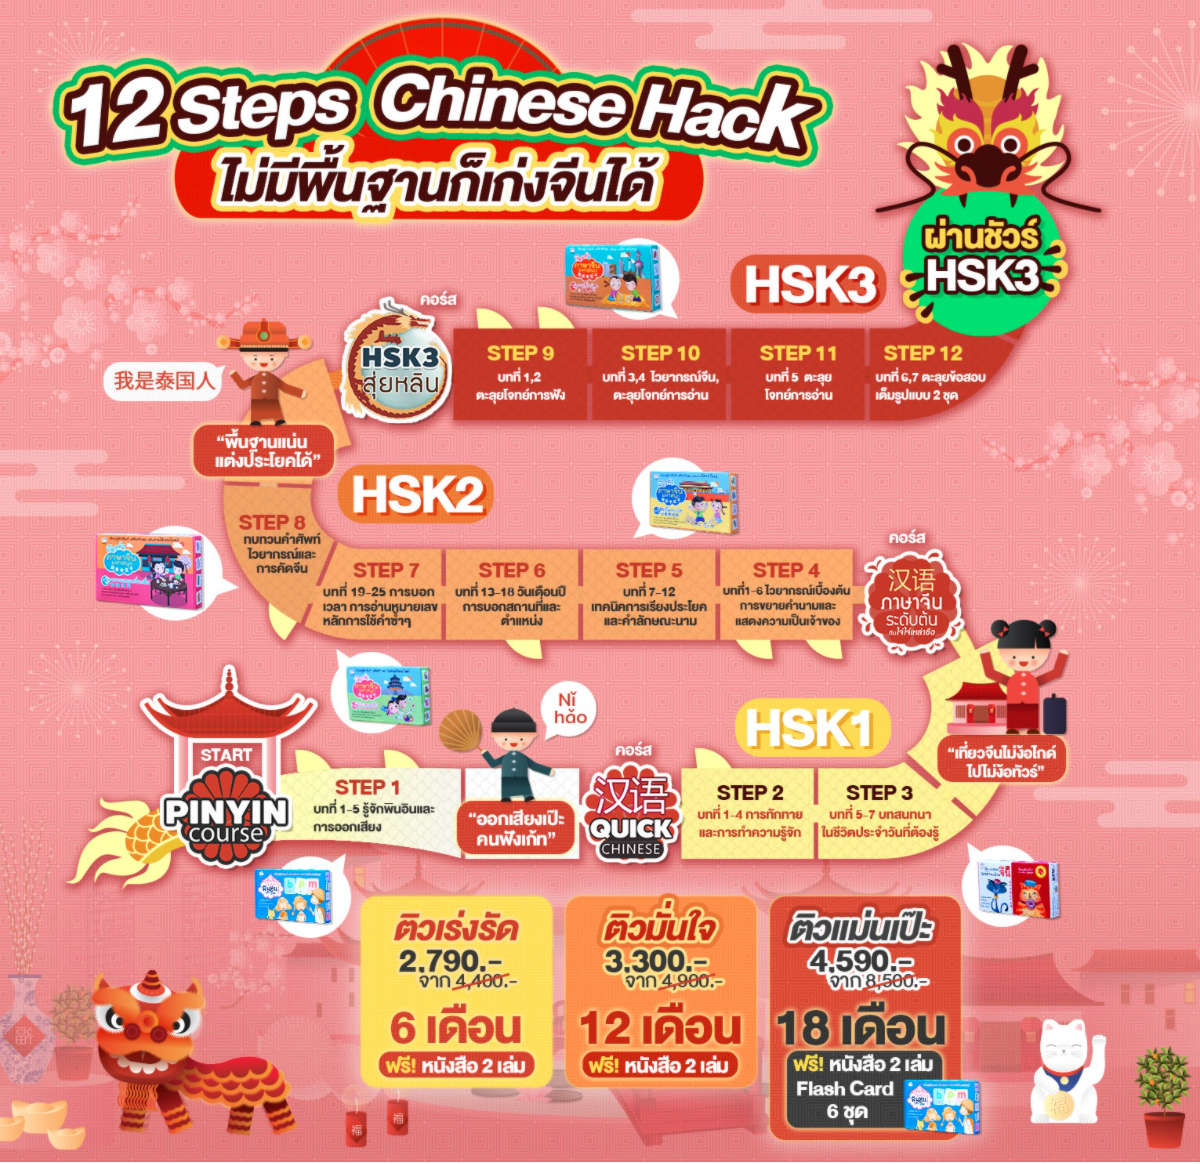 12 Steps Chinese Hack is the effective way to learn Chinese that start from basic to HSK3.